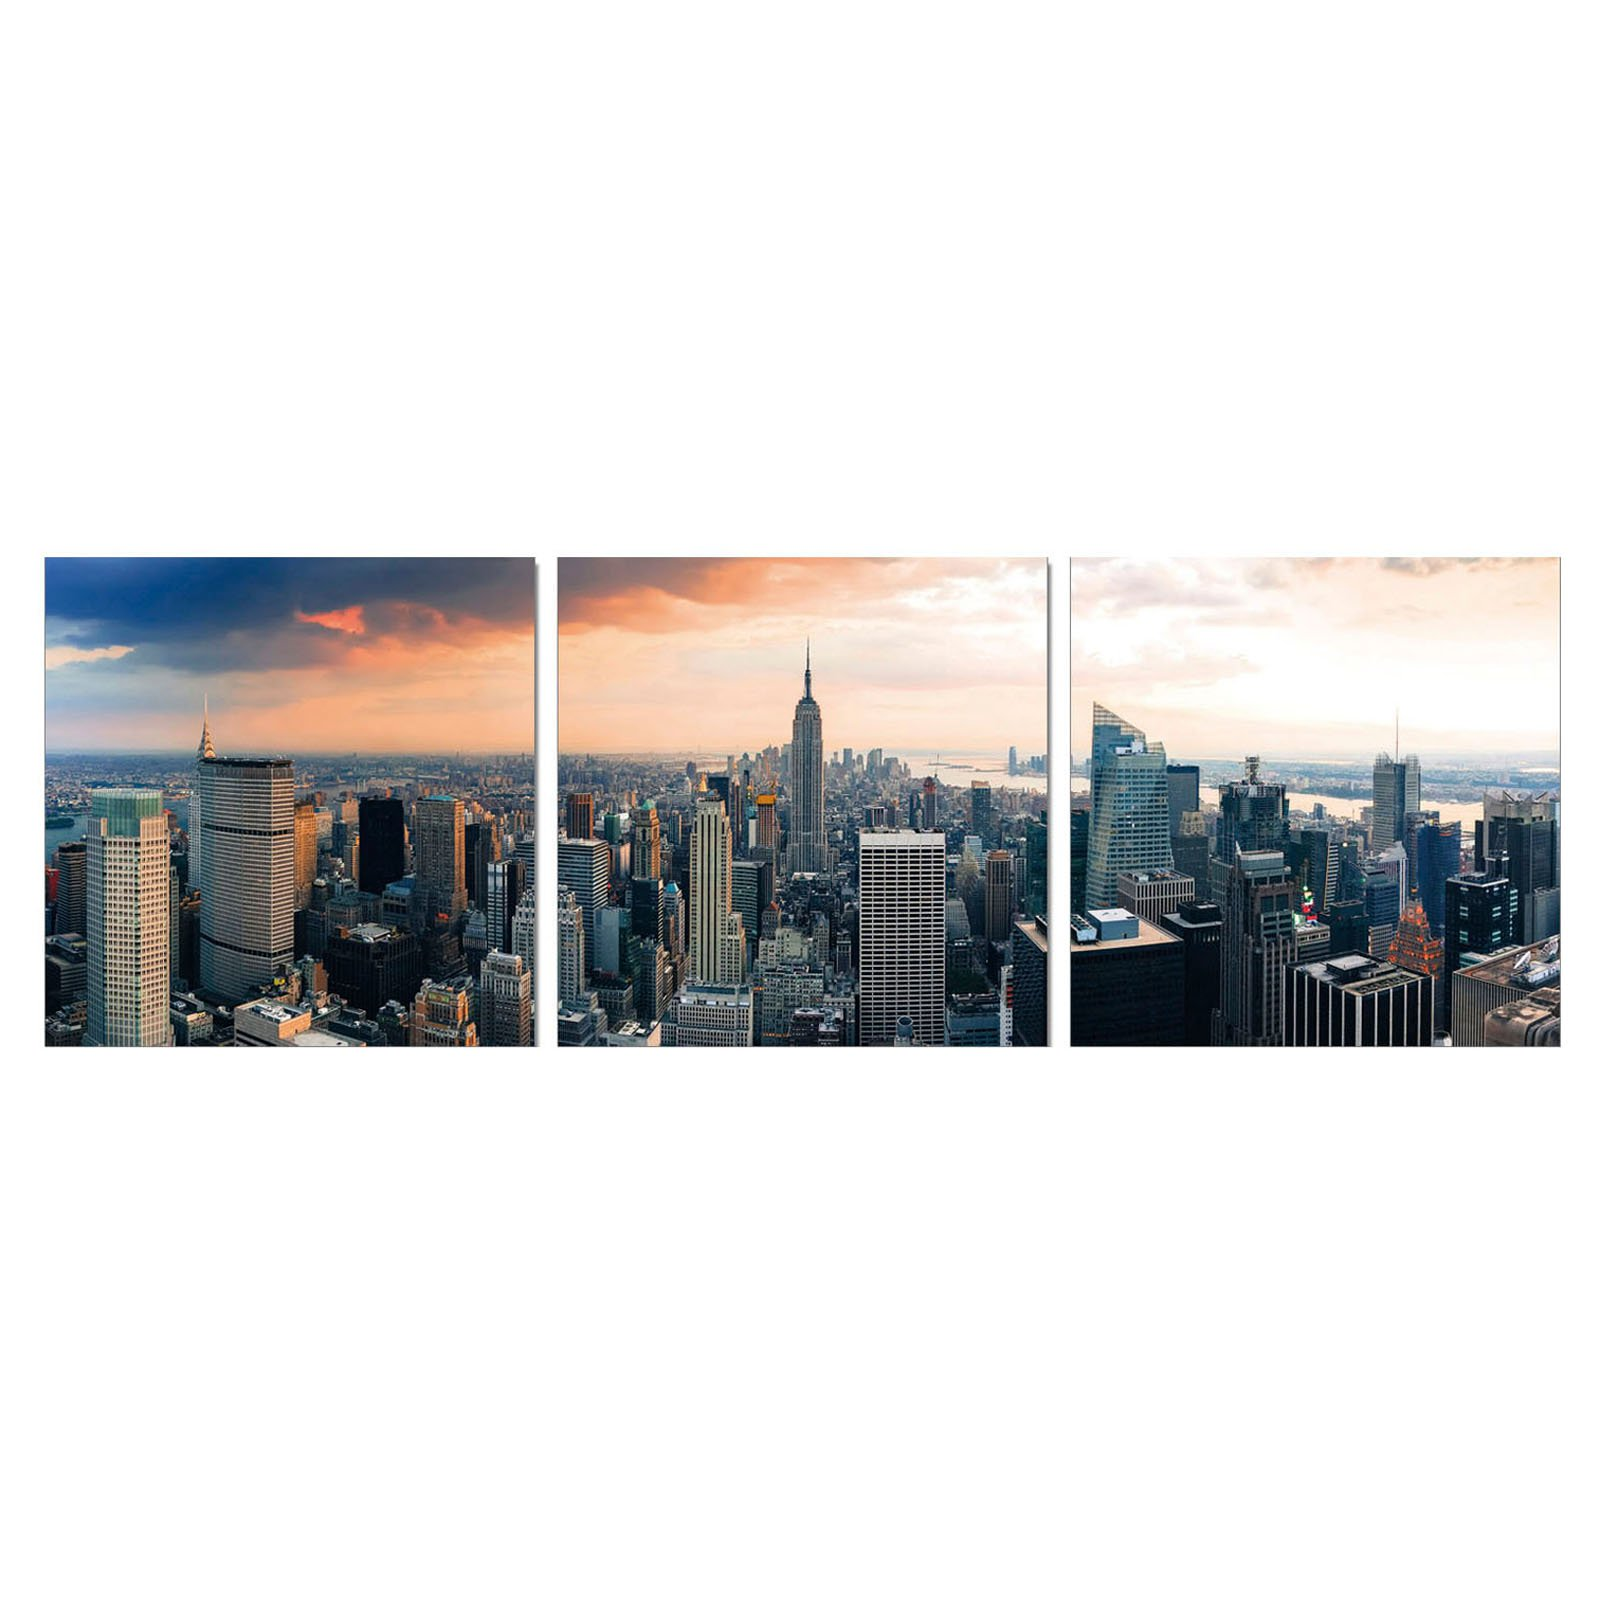 Furinno SENIC Empire State City View 3-Panel Canvas on Wood Frame, 60 x 20-in